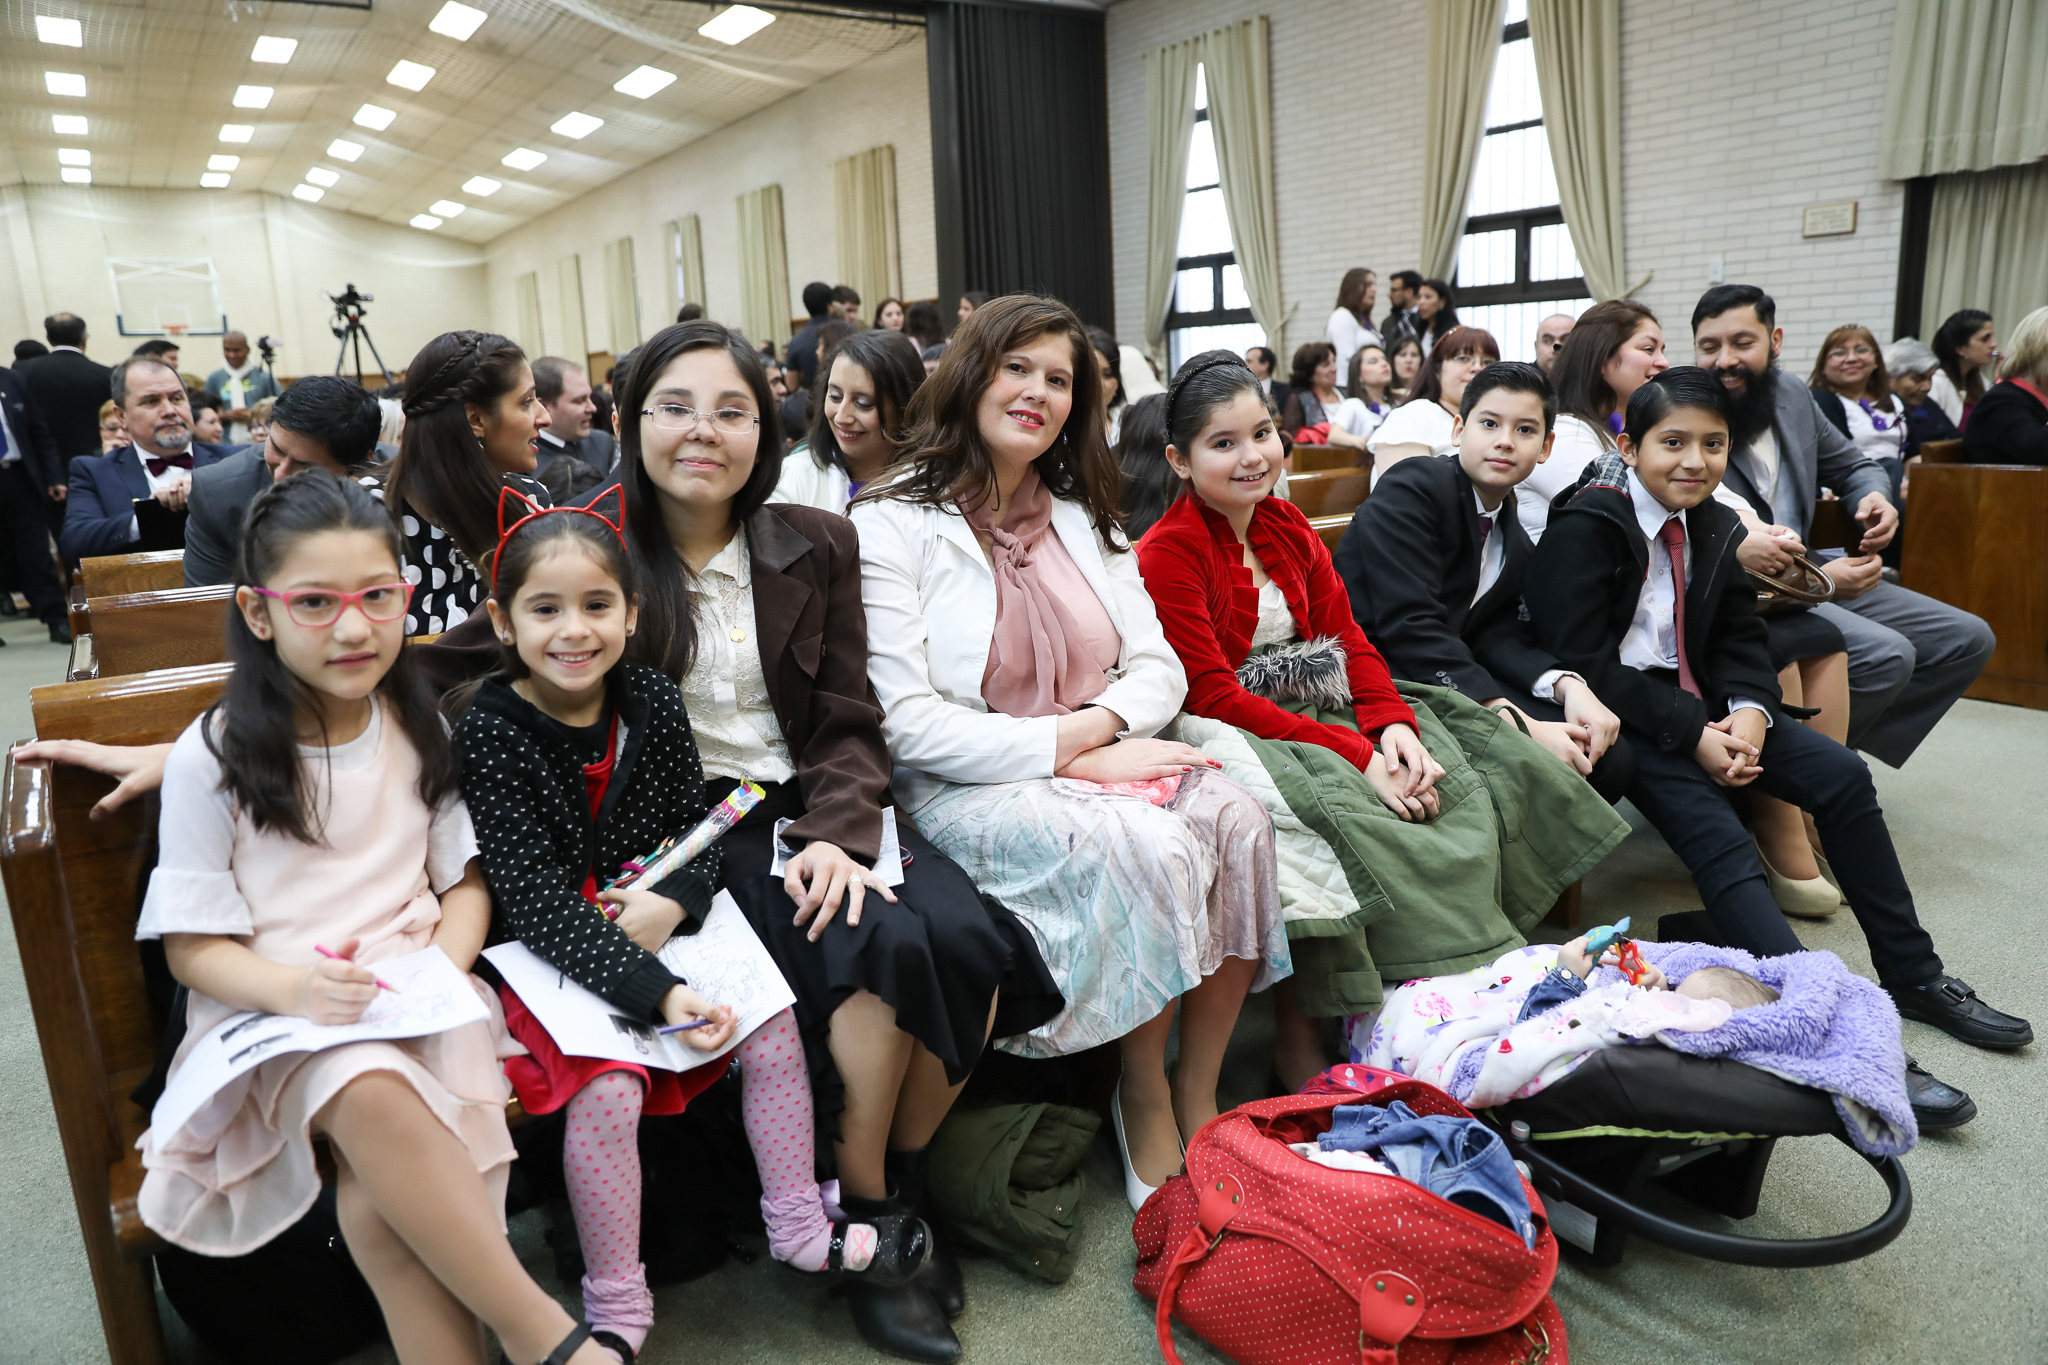 A family in the Tierra del Fuego Argentina Stake pose during a meeting on June 2, 2019.